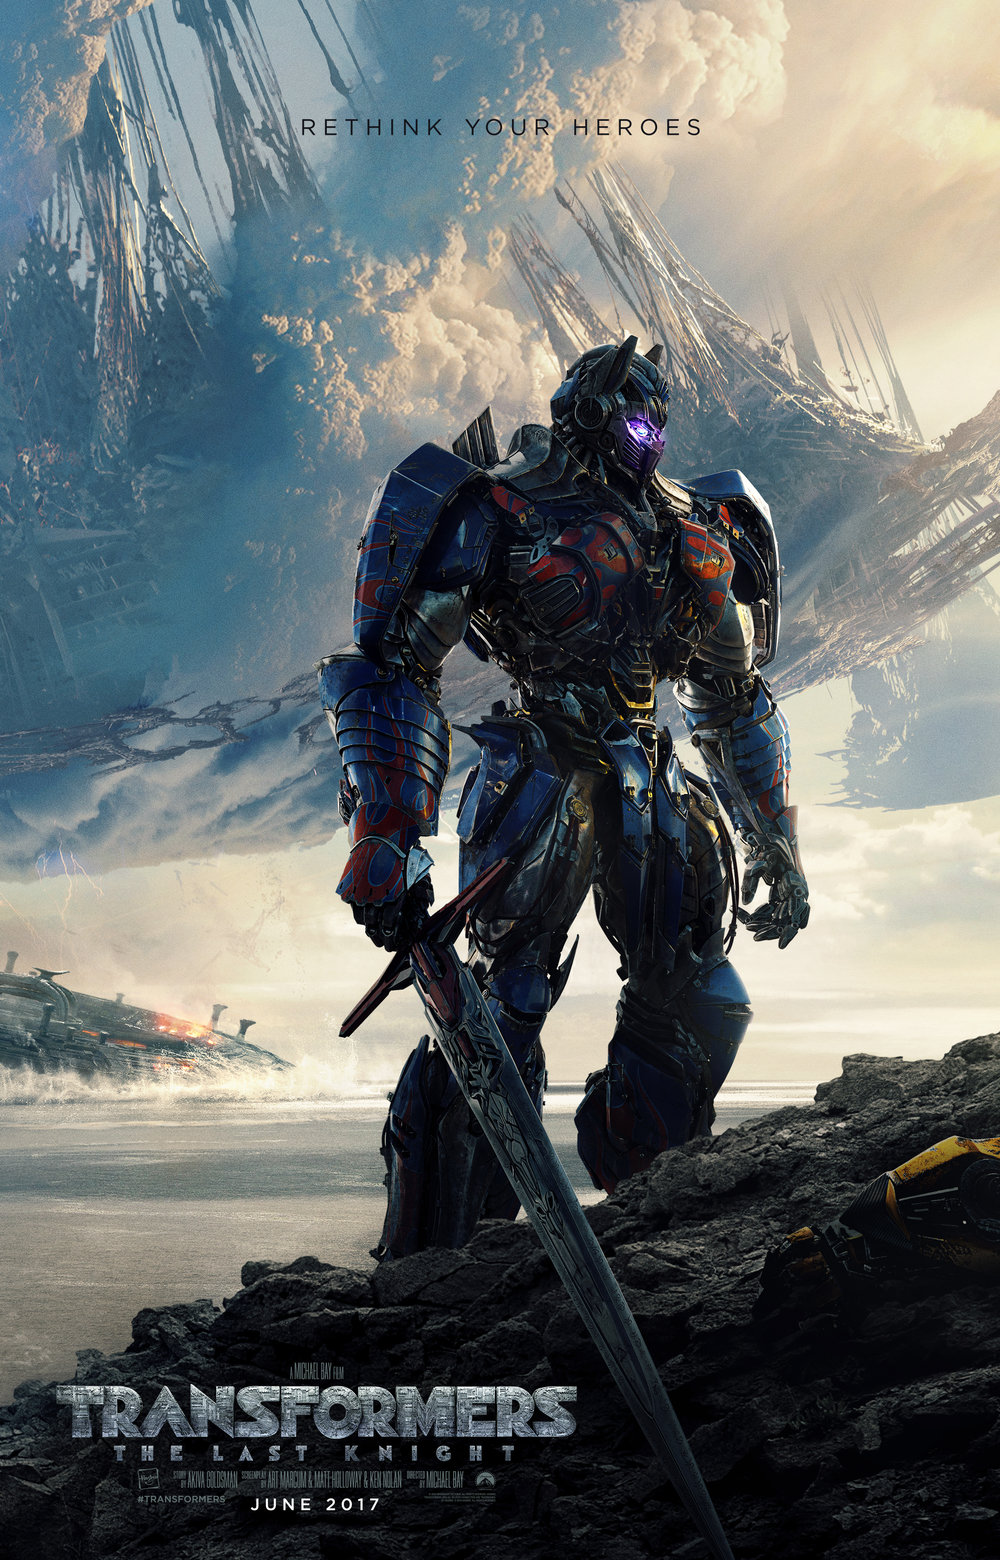 TRANSFORMERS: THE LAST KNIGHT (3D CONVERSION)